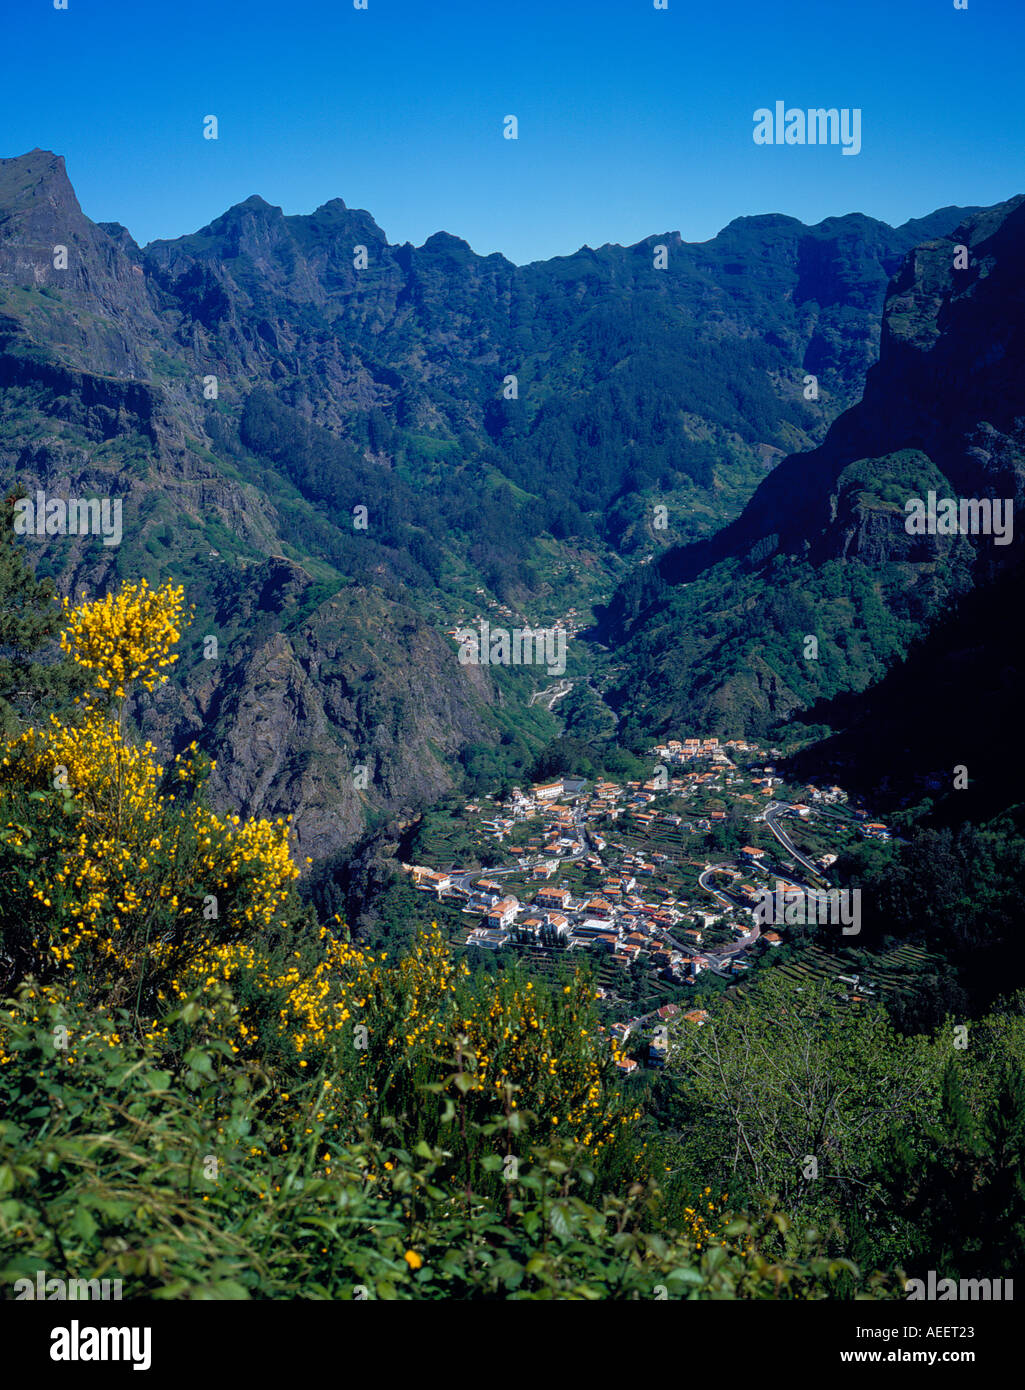 valley hiding place of nuns Curral das Freiras Madeira Portugal Europe. Photo by Willy Matheisl - Stock Image